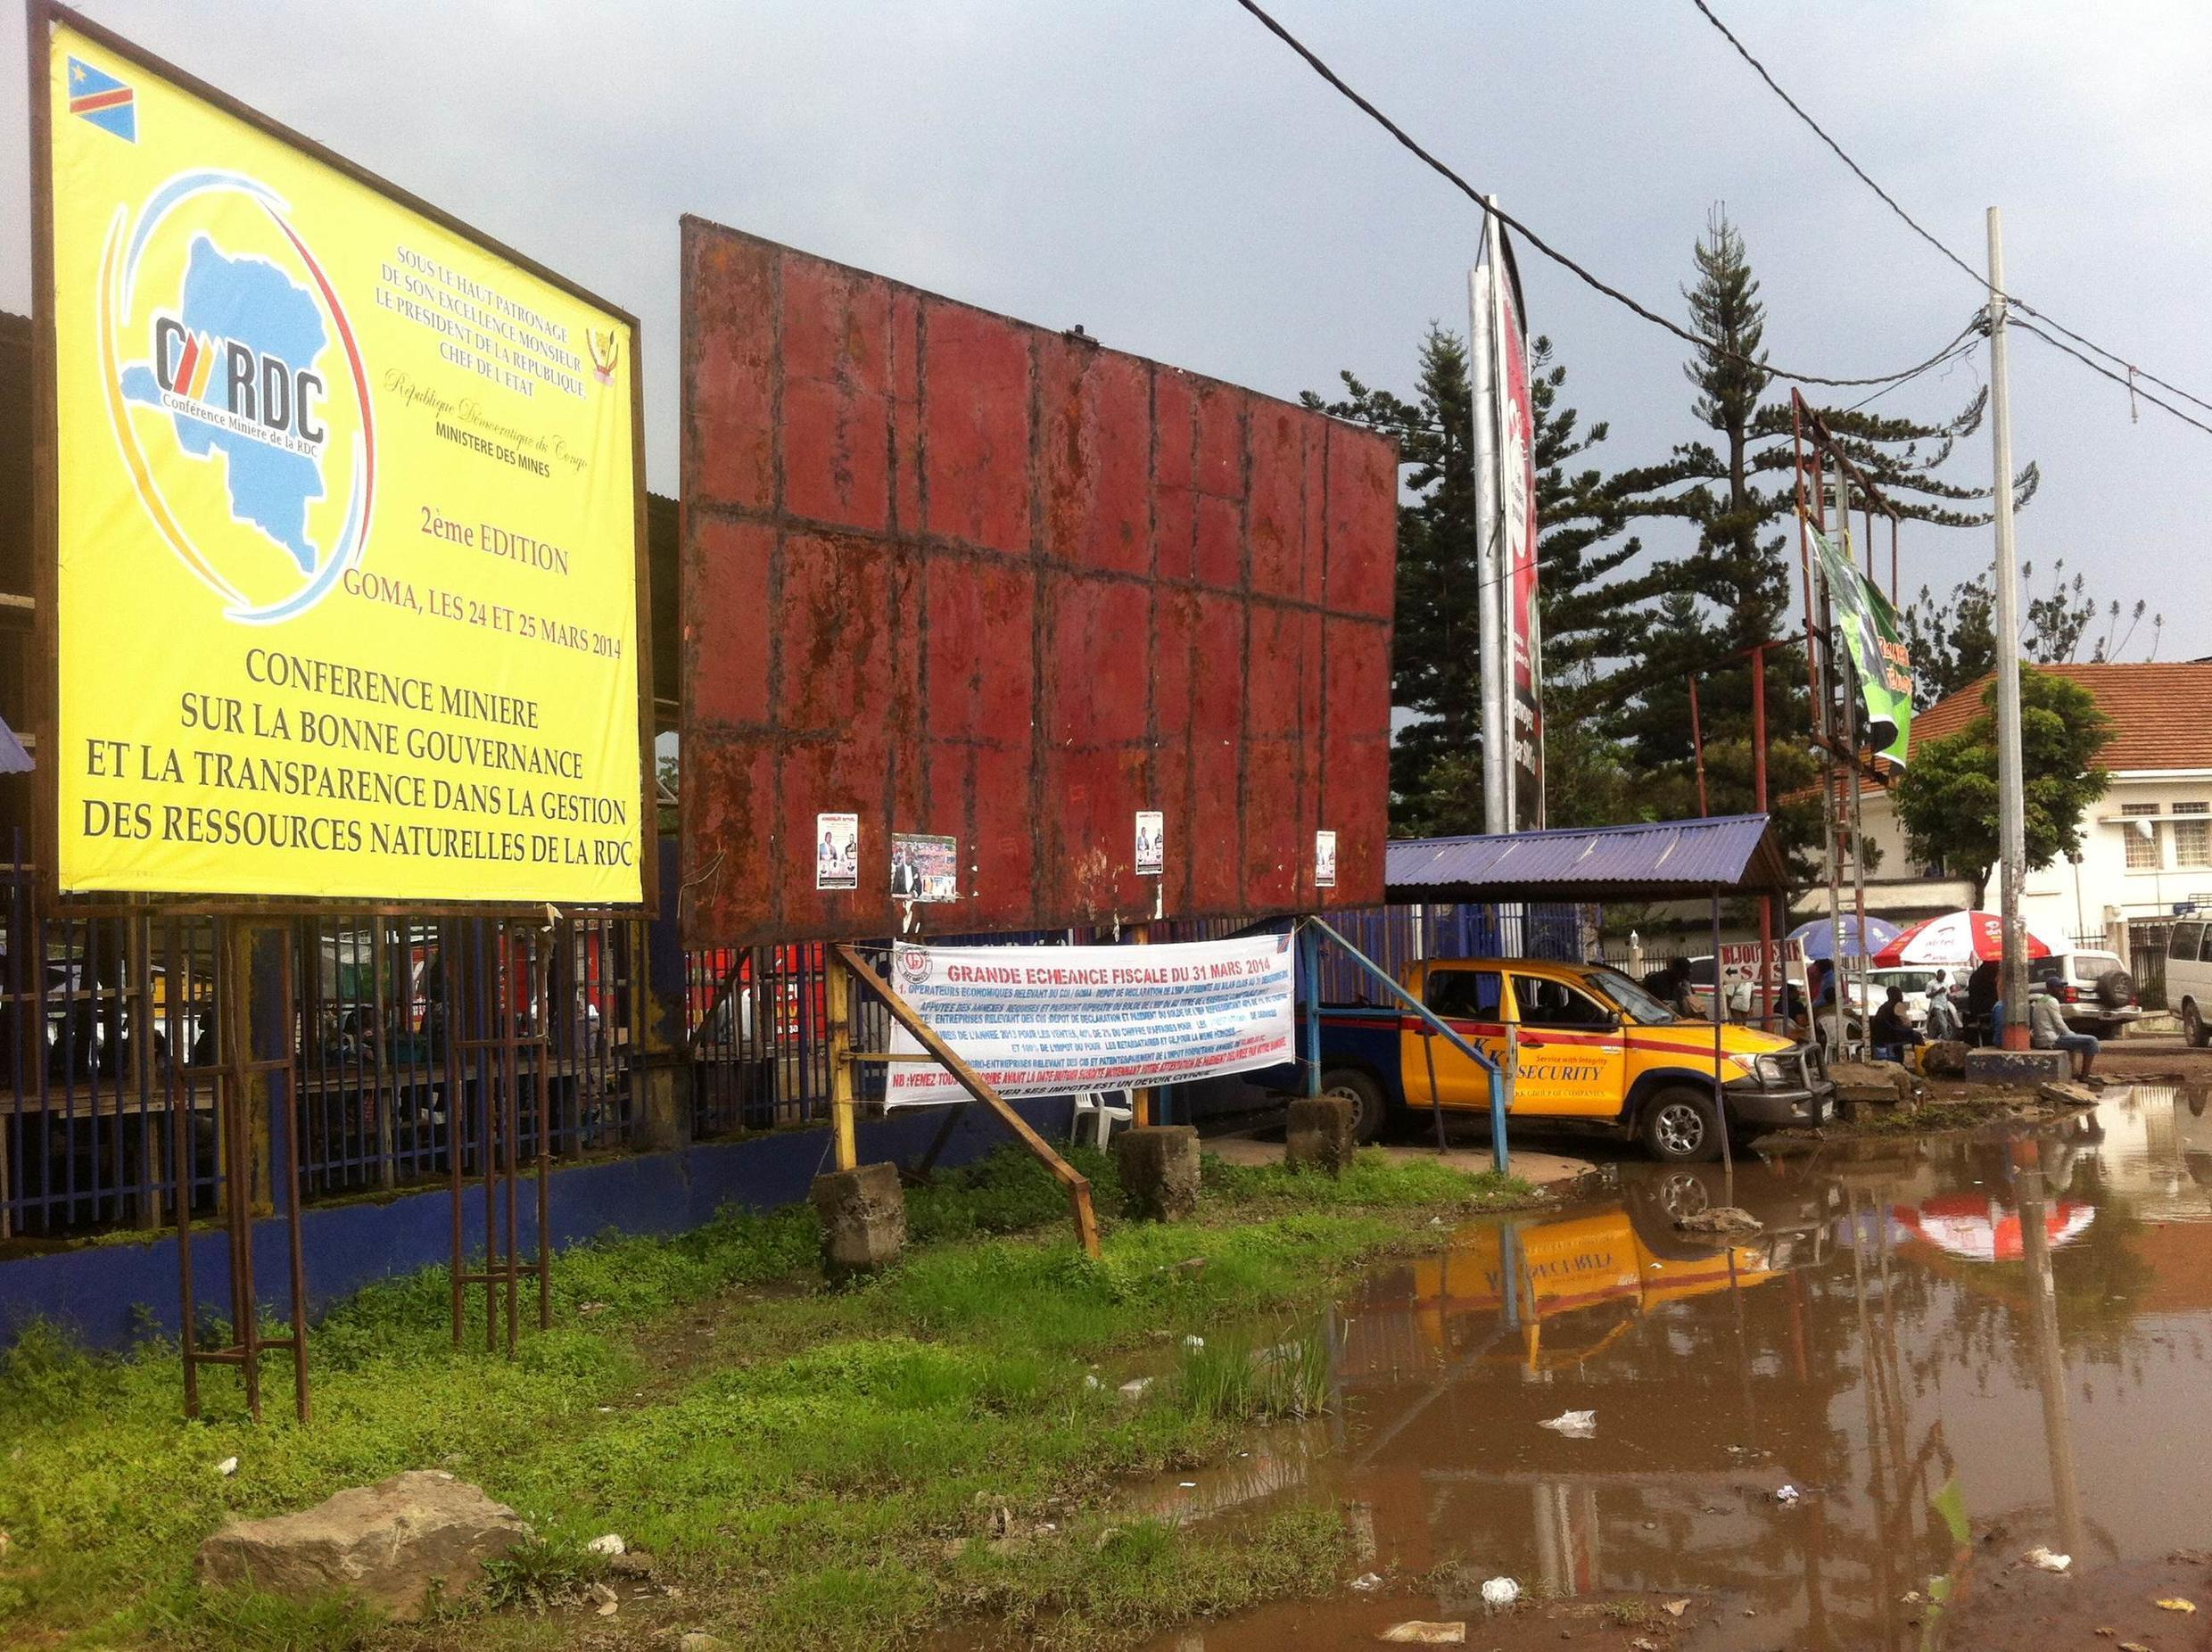 Authorities in Goma paid for makeshift repairs before the beginning of this conference on mining. Charly Kasereka/Goma